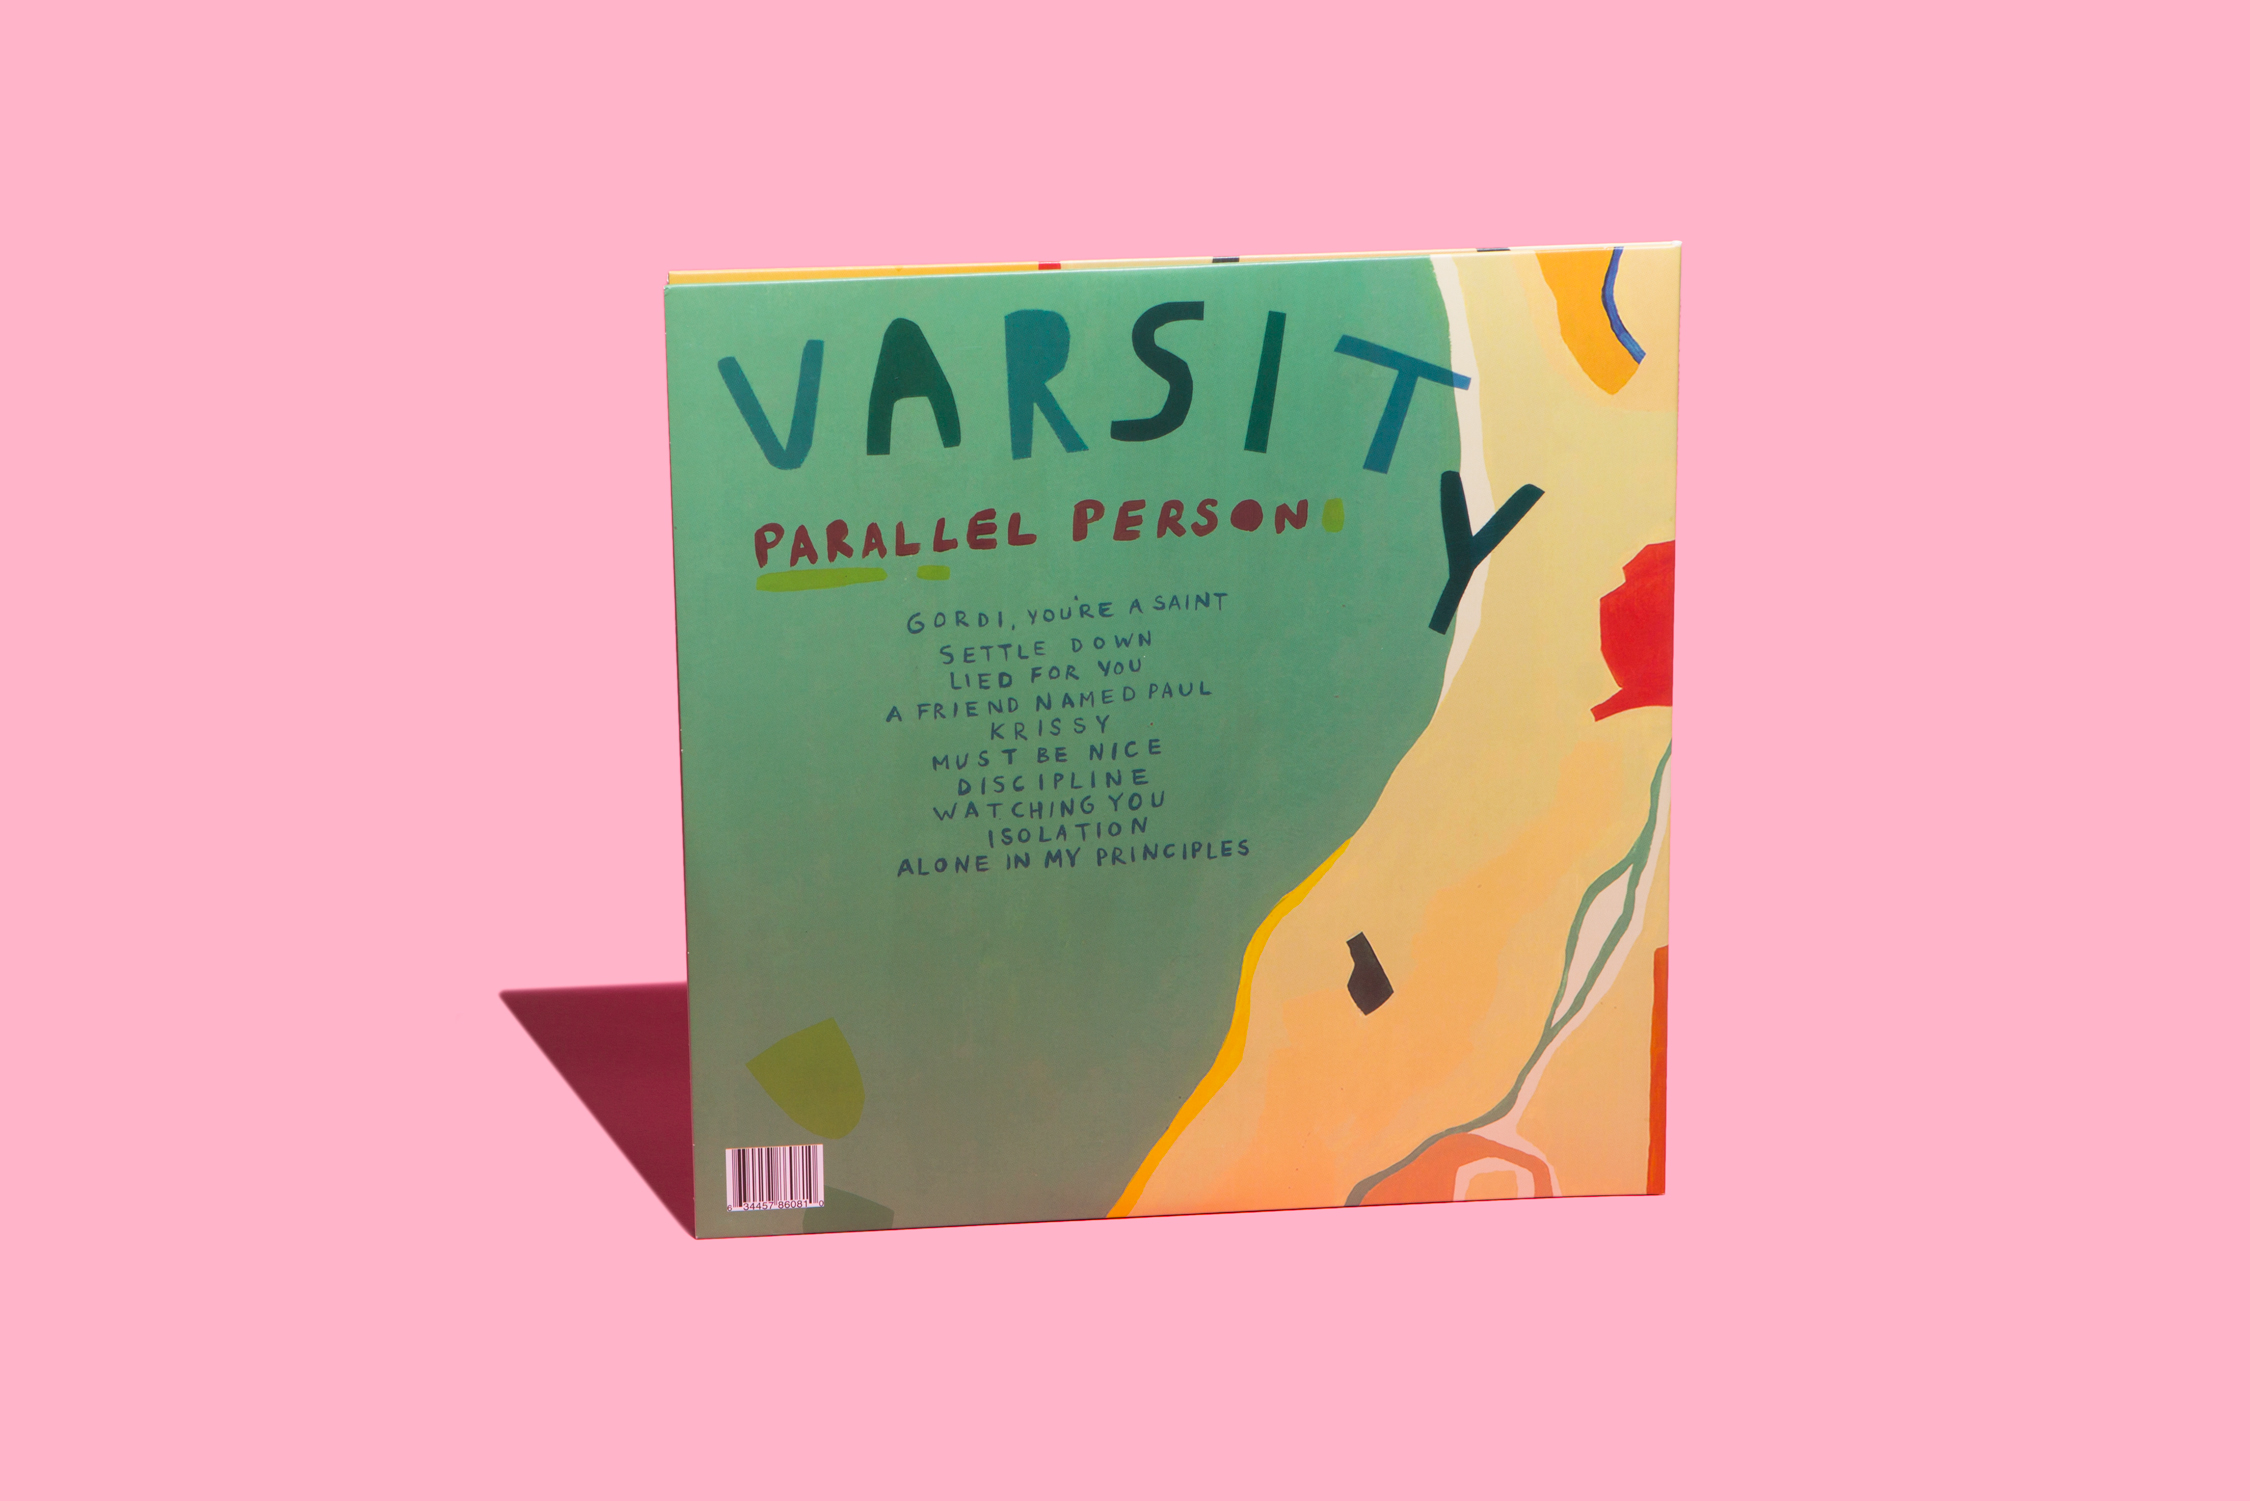 Varsity - Parallel Person